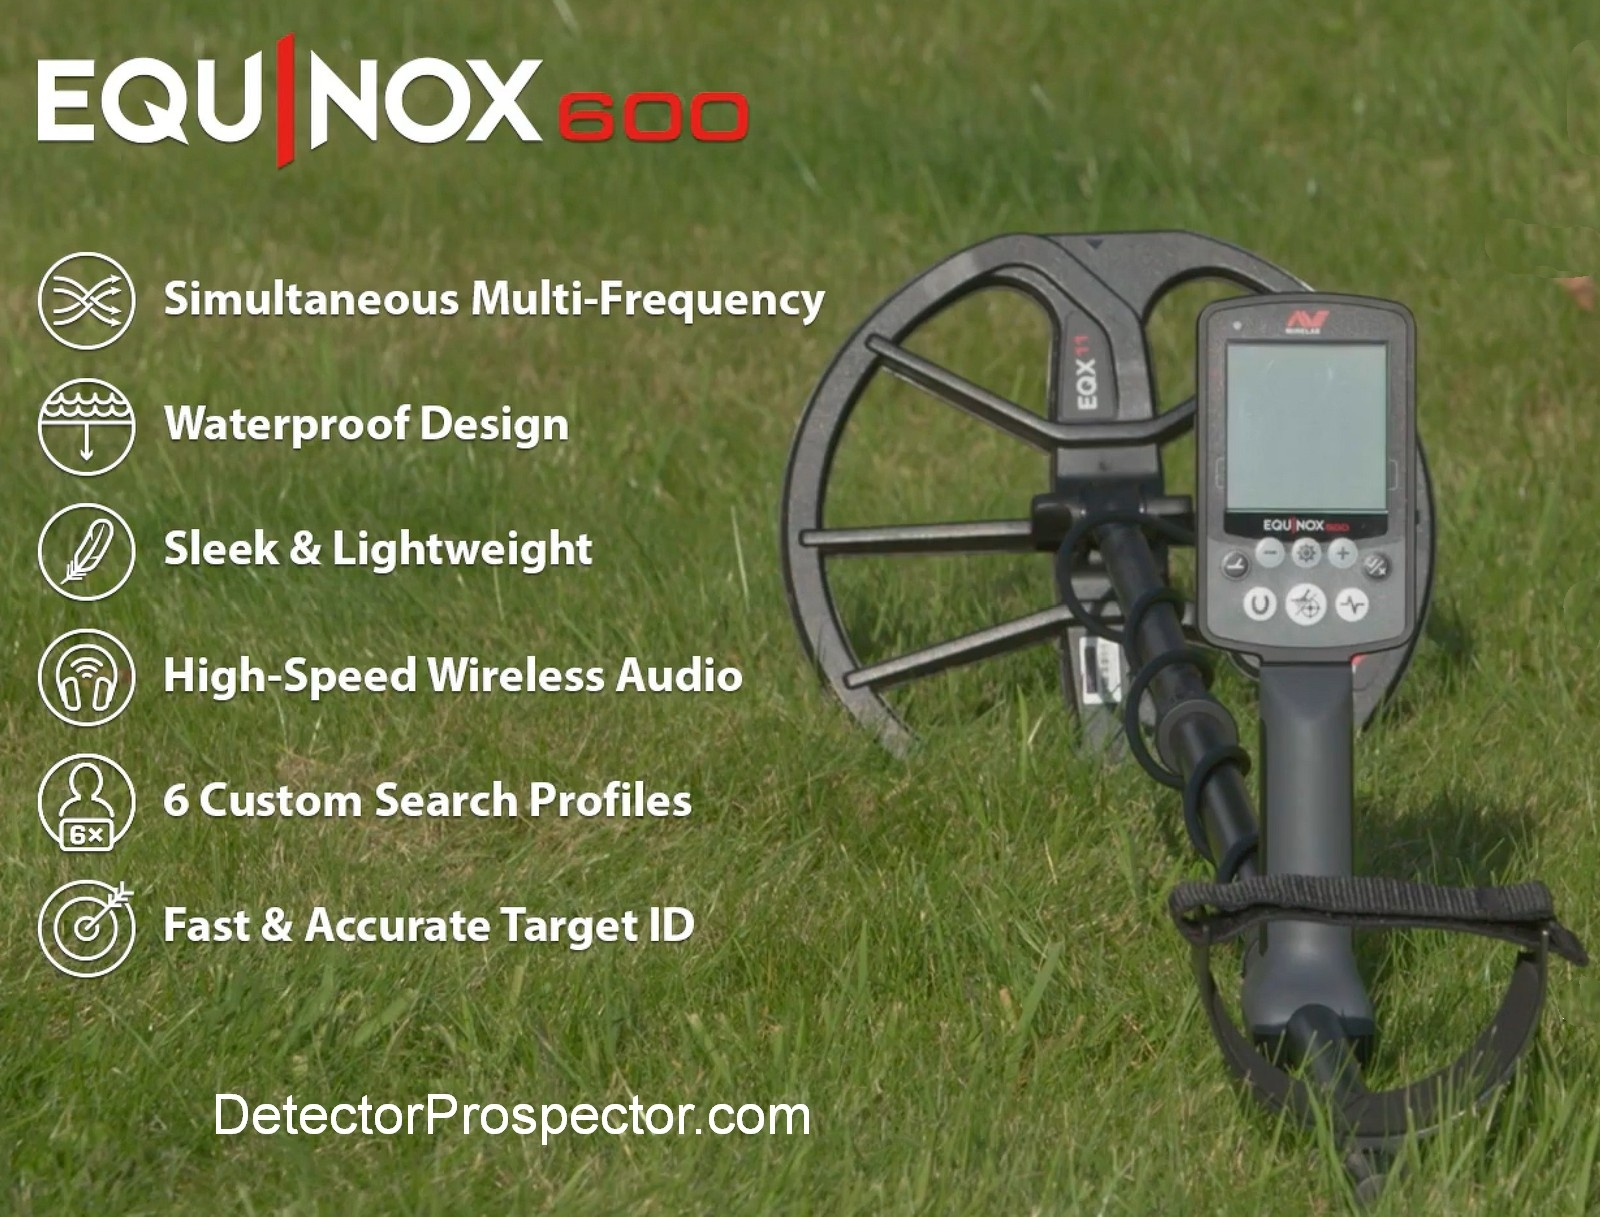 minelab-equinox-600-basic-feature-poster.jpg